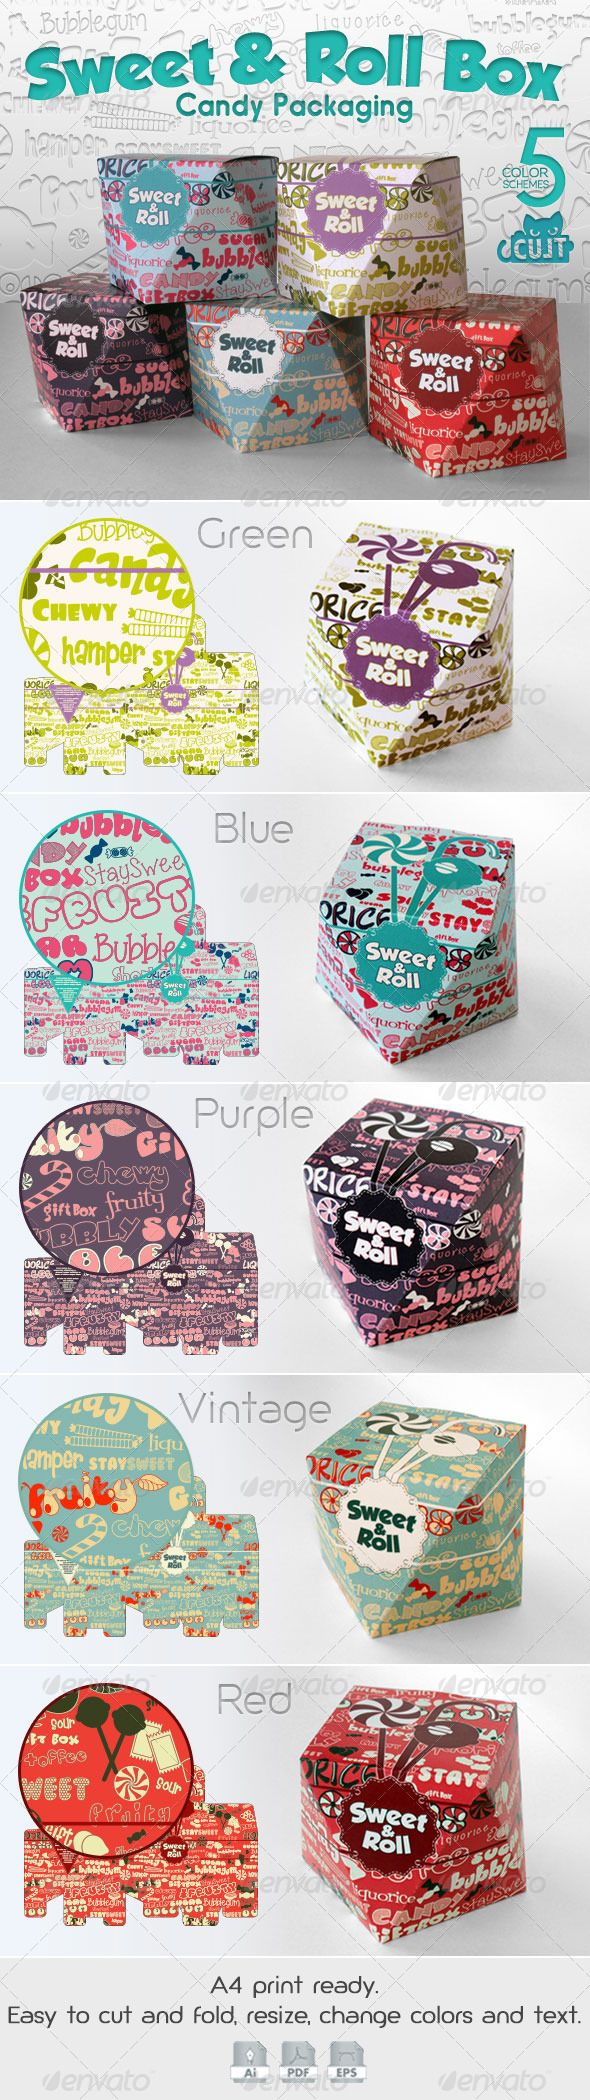 Sweet & Roll Candy Box Here http://bit.ly/1gR3QE7